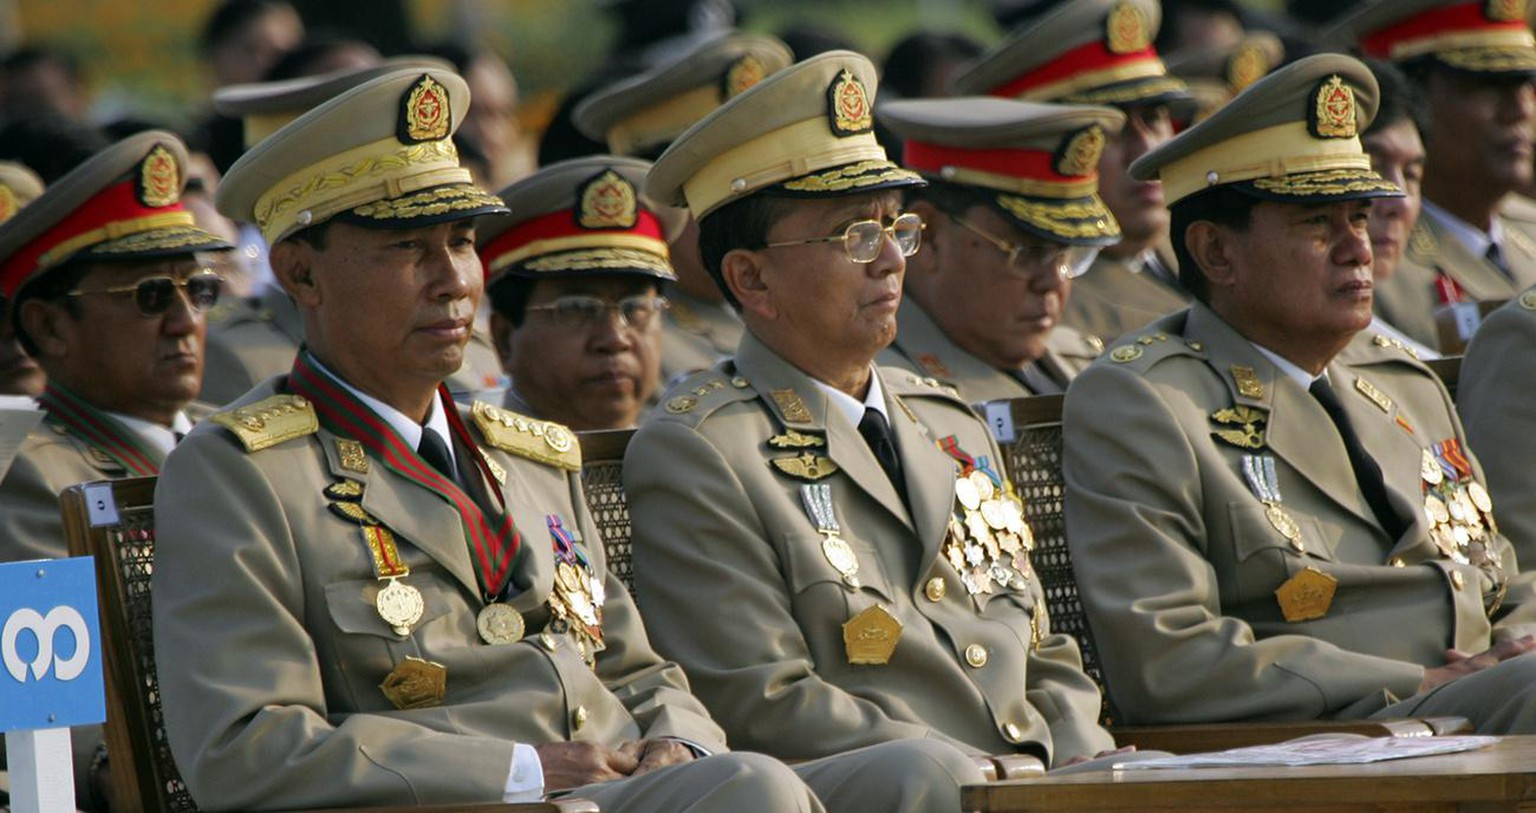 Myanmar junta leaders Gen. Thura Shwe, left, Lt. Gen. Thein Sein, center and Lt. Gen Kyaw Win, right, look on during 62nd annual Armed Forces Day ceremonies Tuesday, March 27, 2007, in the capital city of Naypyidaw, Myanmar. The cyclone that devastated Myanmar's heartland has also roiled a political landscape dominated by the military for more than four decades. But the ruling junta's grip on power remains. (AP Photo/David Longstreath)